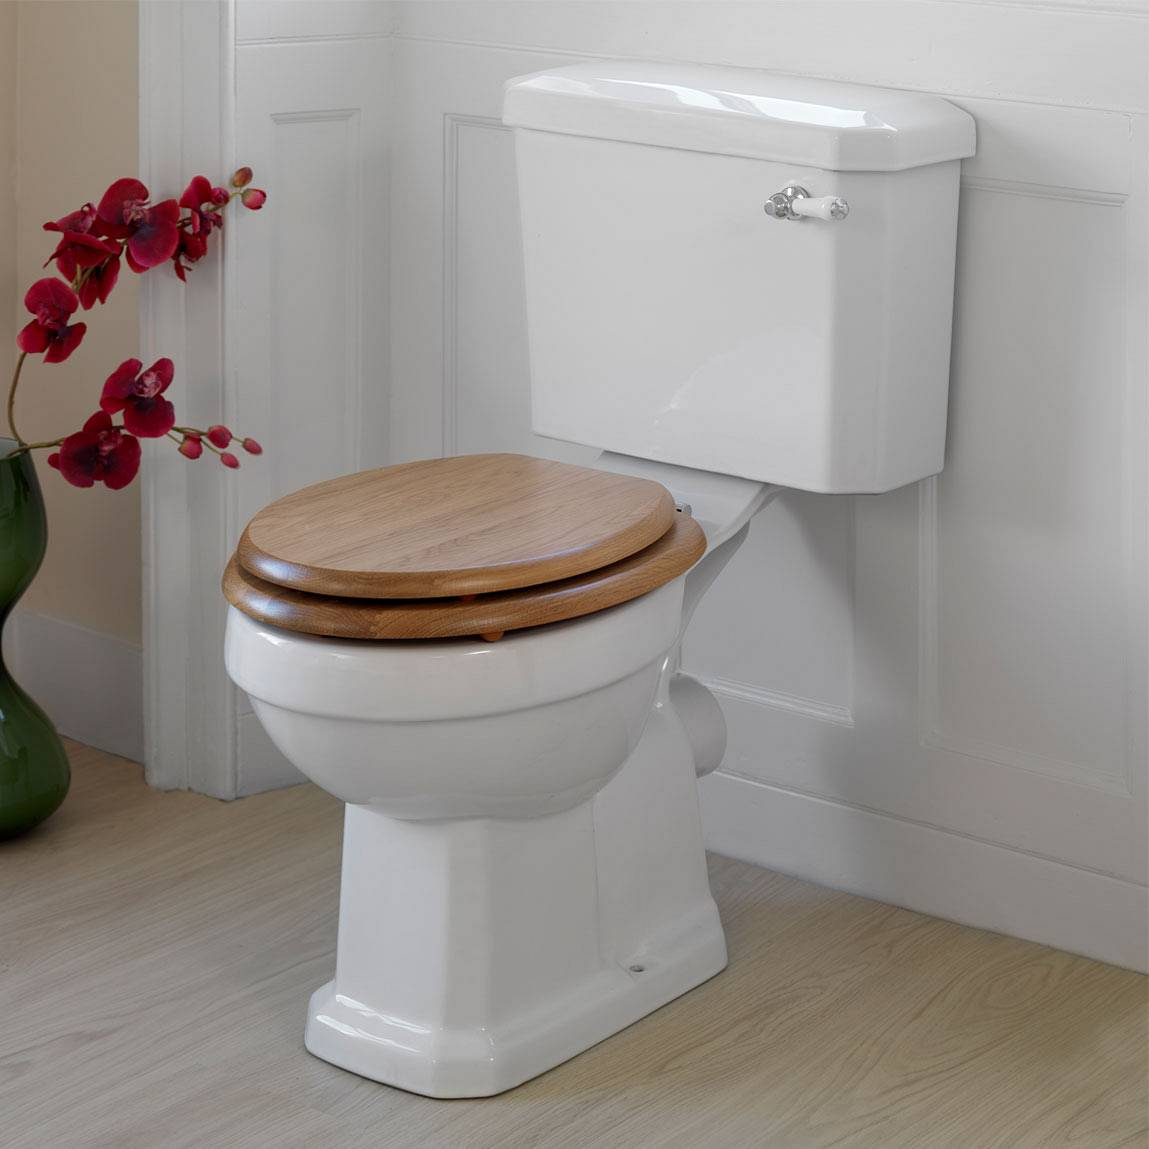 dark wood toilet seat A Wood Toilet Seat The Choice For Nature